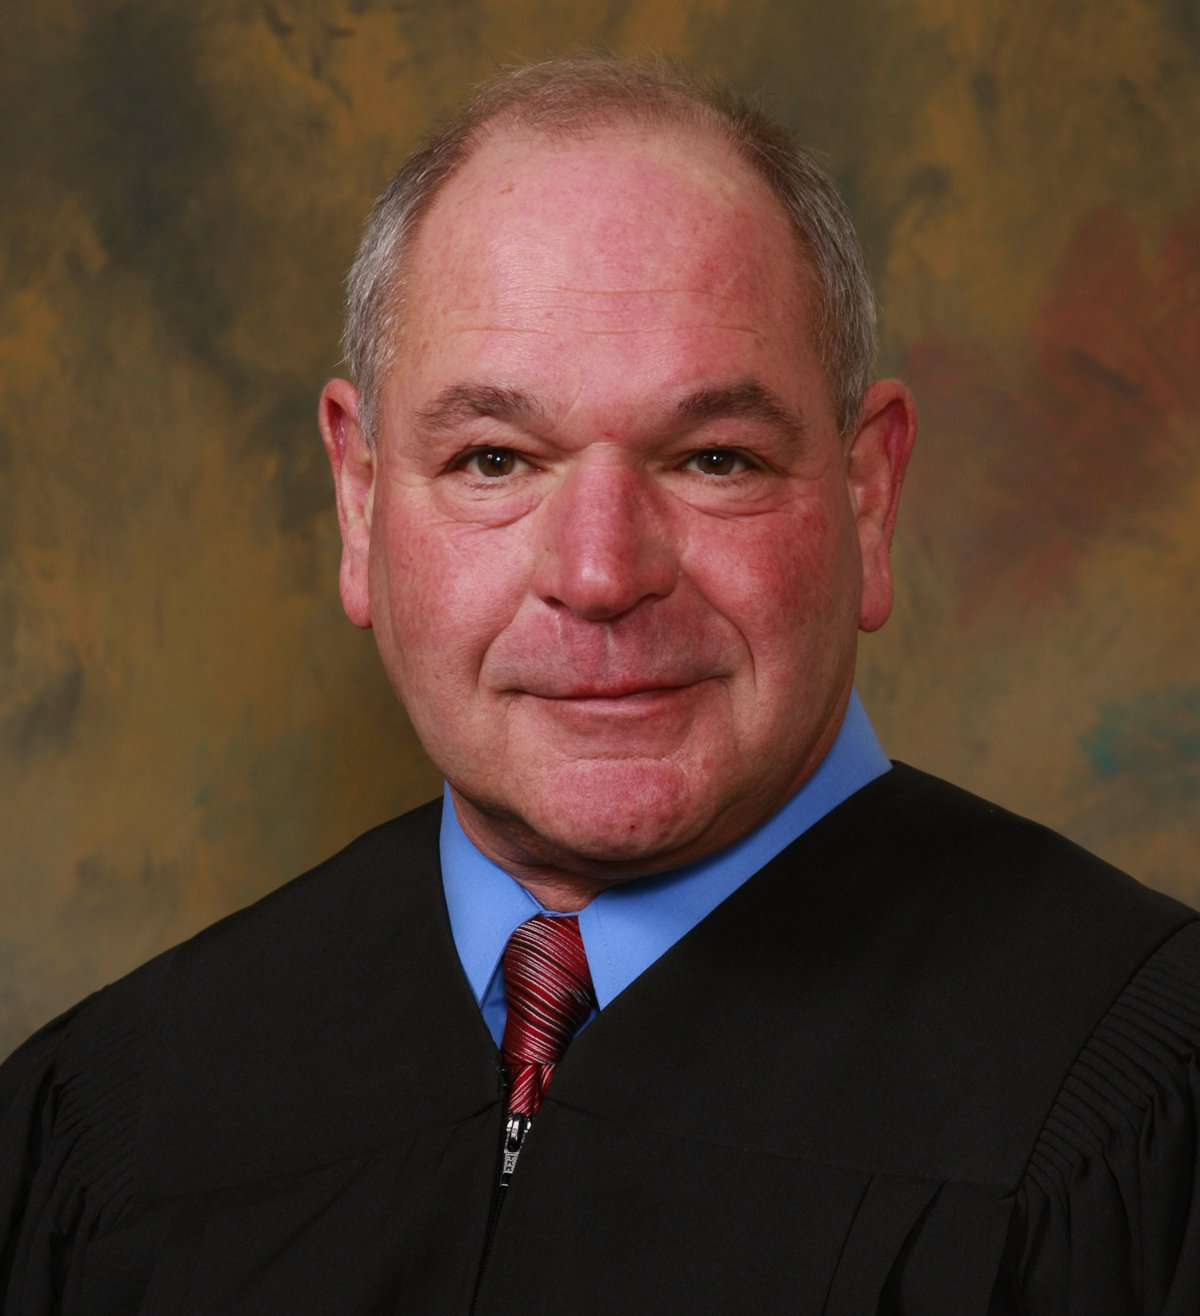 Judge Mike Cicconetti